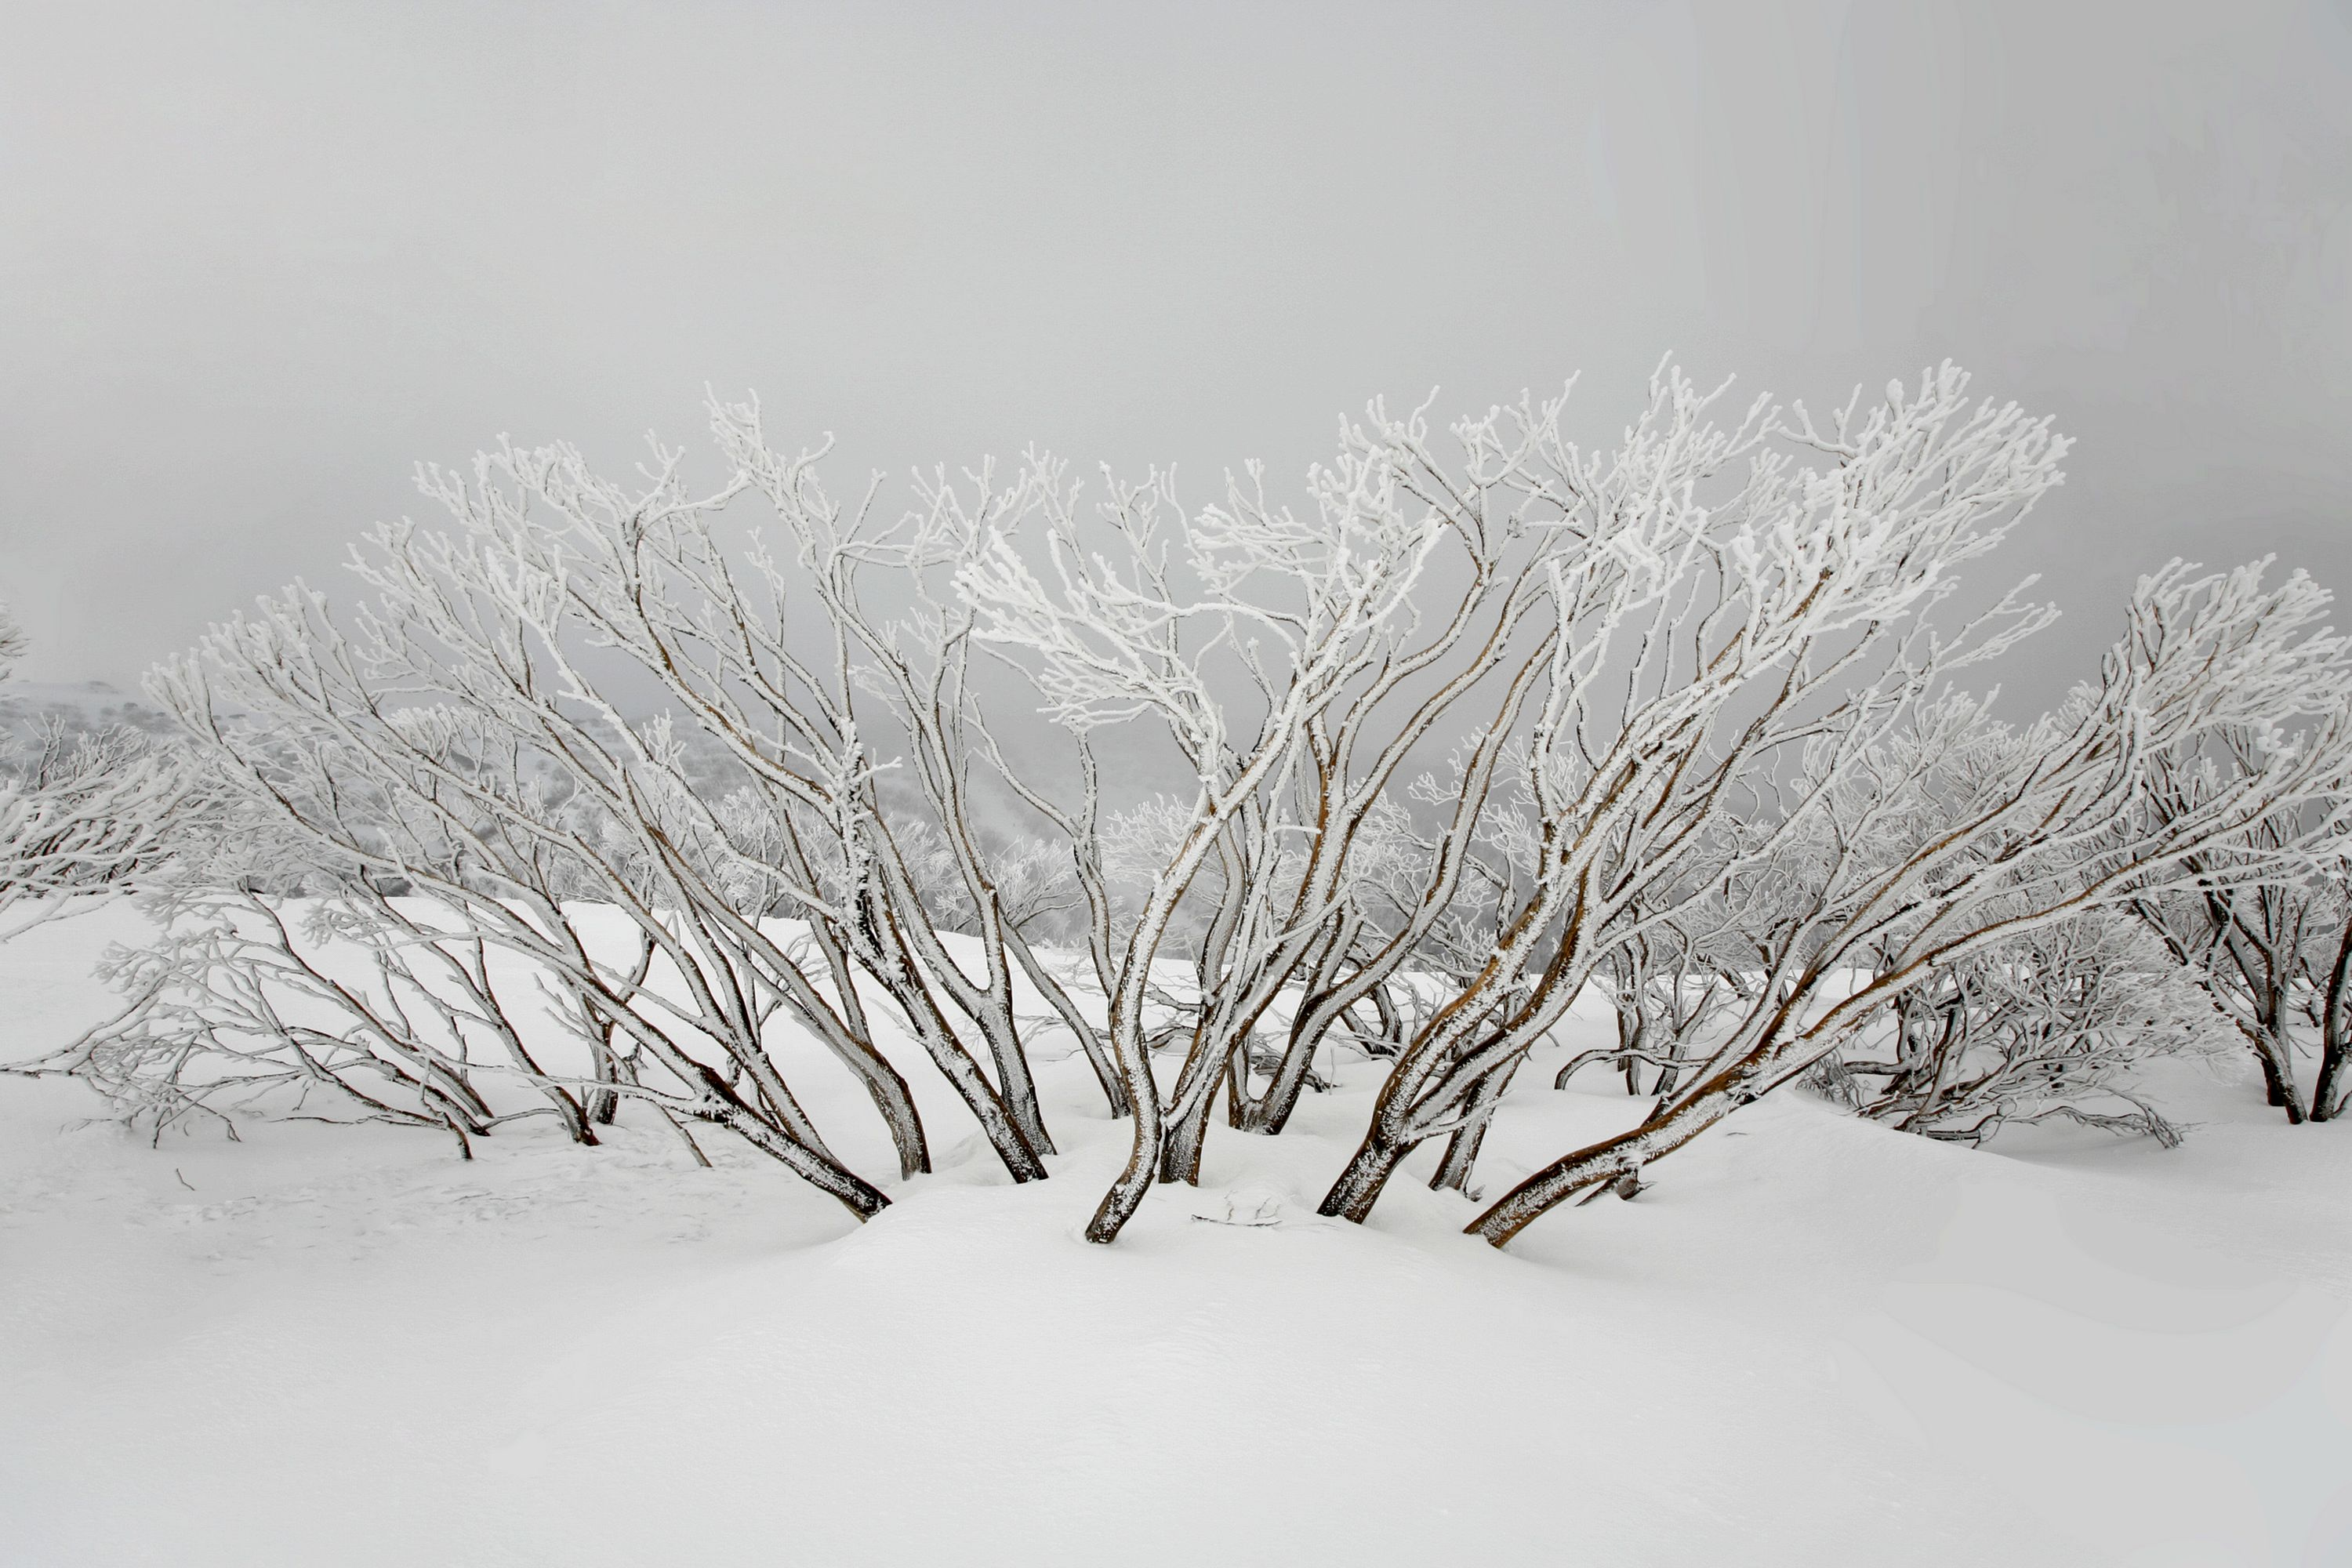 Snowgum Trunks in Mist and Snow